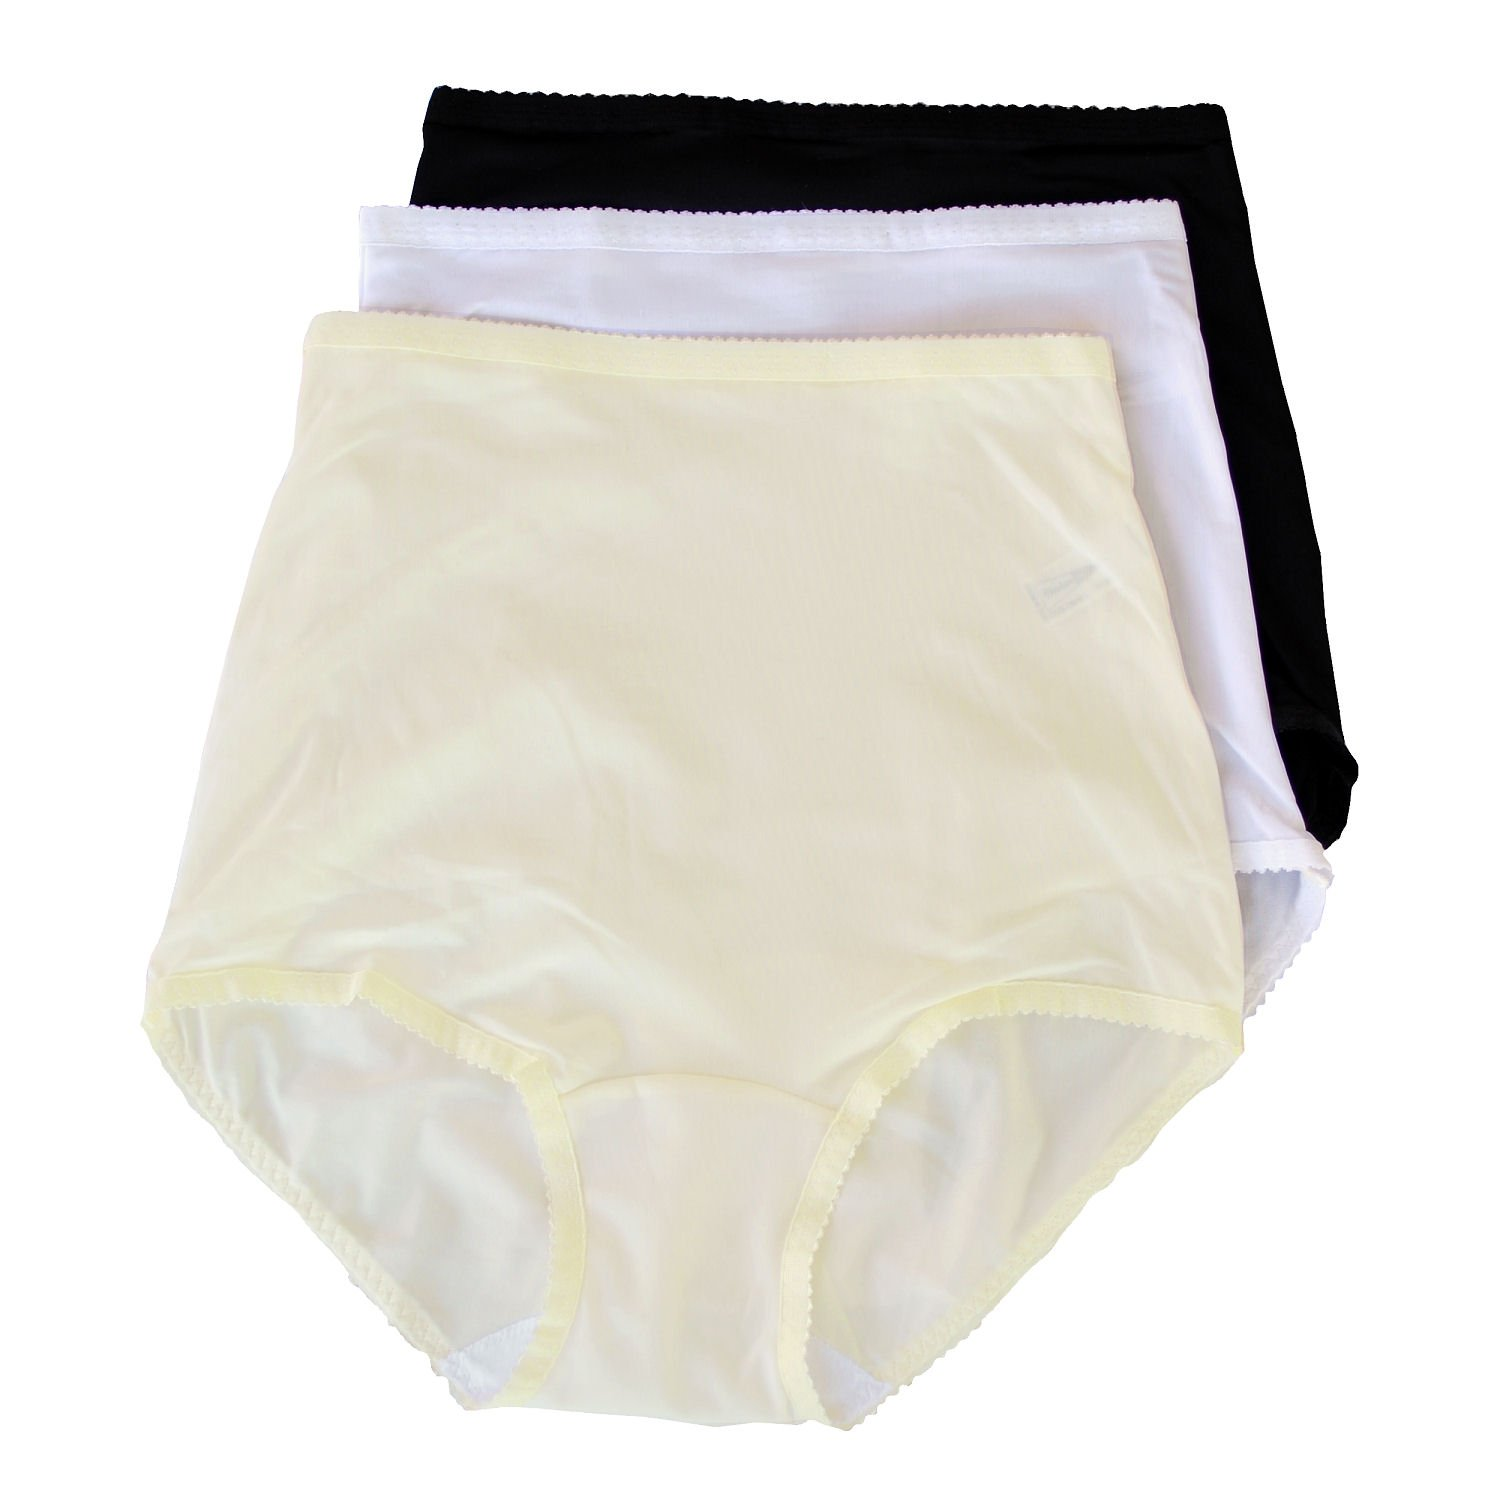 Shadowline Nylon Spandex Briefs, Panties, Style 17005 (pkg Of 3-White,Black,Ivory), 2X